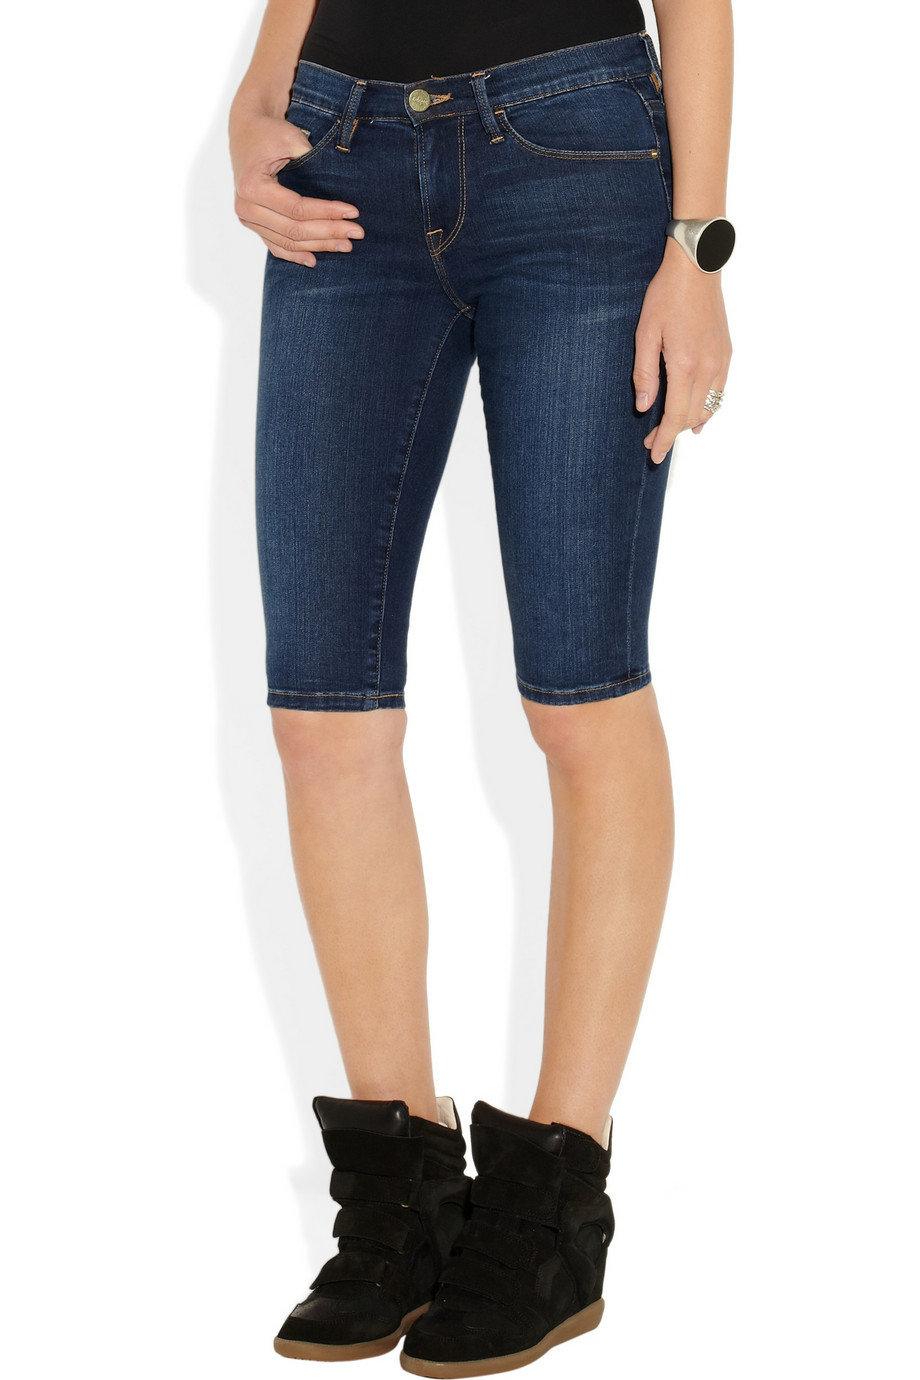 Lyst - Frame Le Skinny De Jeanne Stretch Denim Bermuda Shorts in Blue